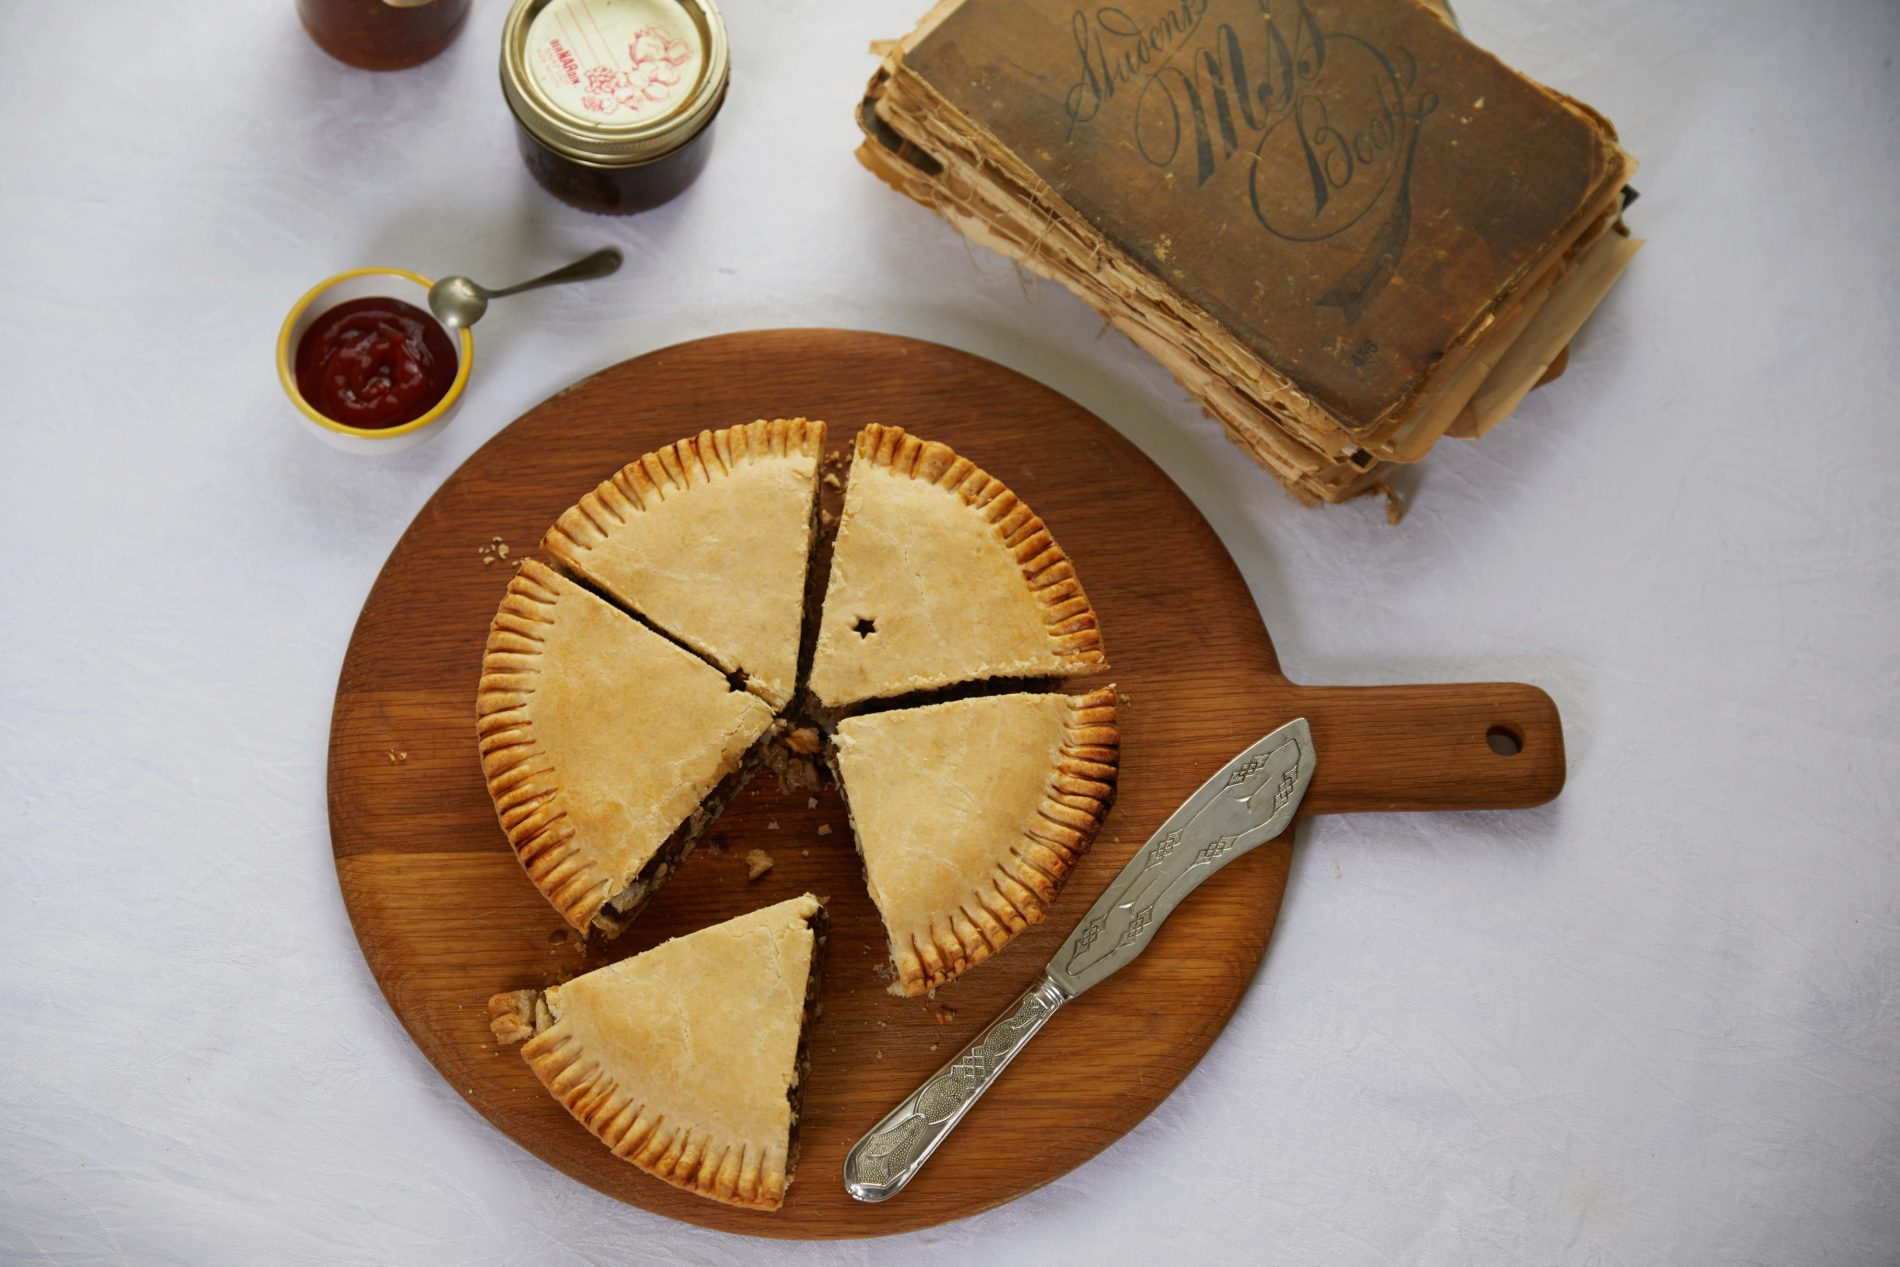 Grateful Pies Has Announced Its UK Launch